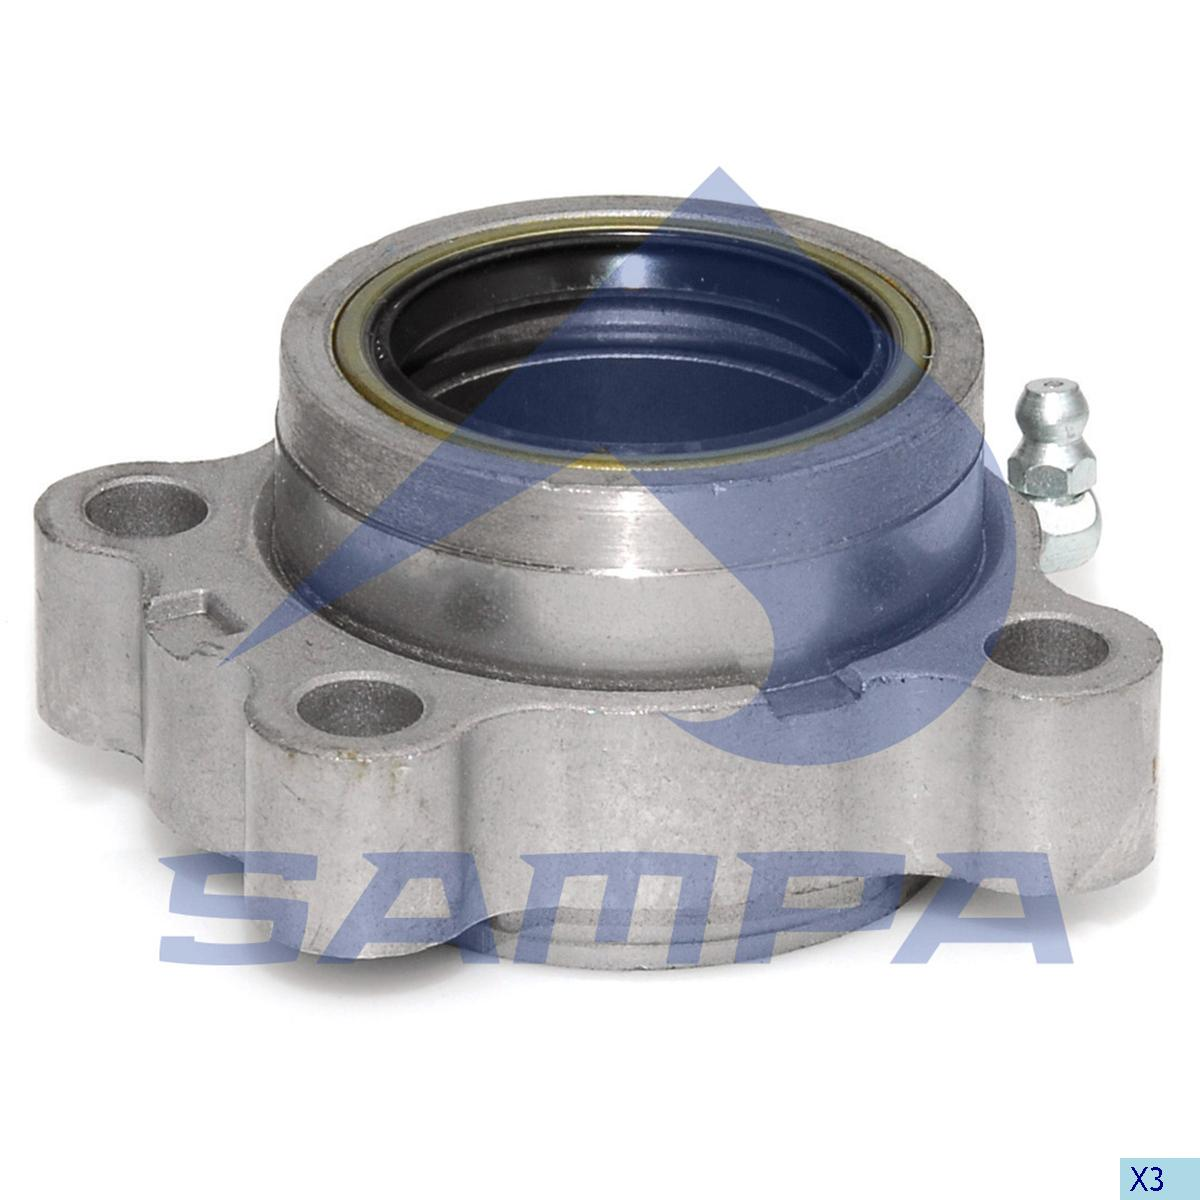 Spherical Bearing, Brake Cam Shaft, Ror-Meritor, Brake